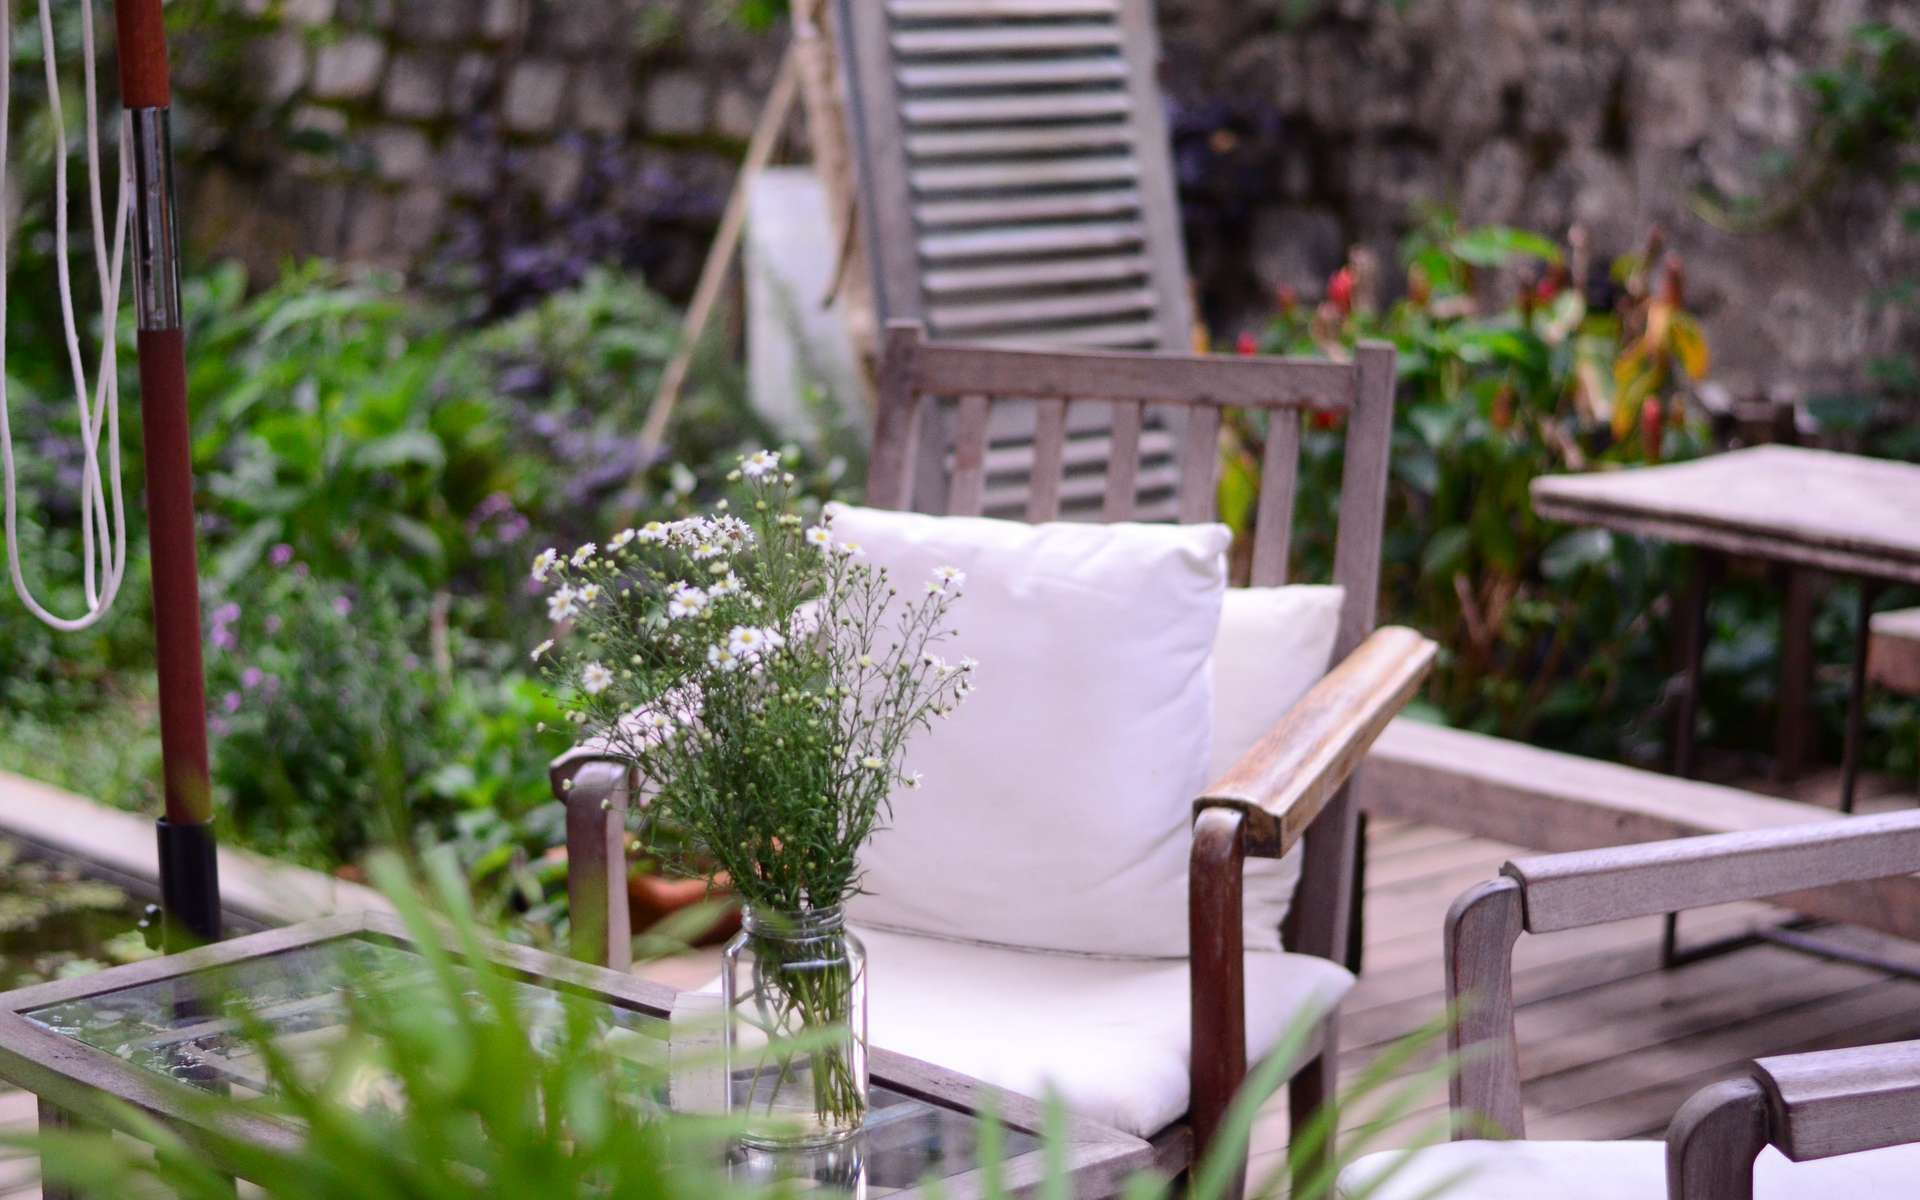 French Days Cdiscount : bons plans jardin © Tanny Do, Unsplash